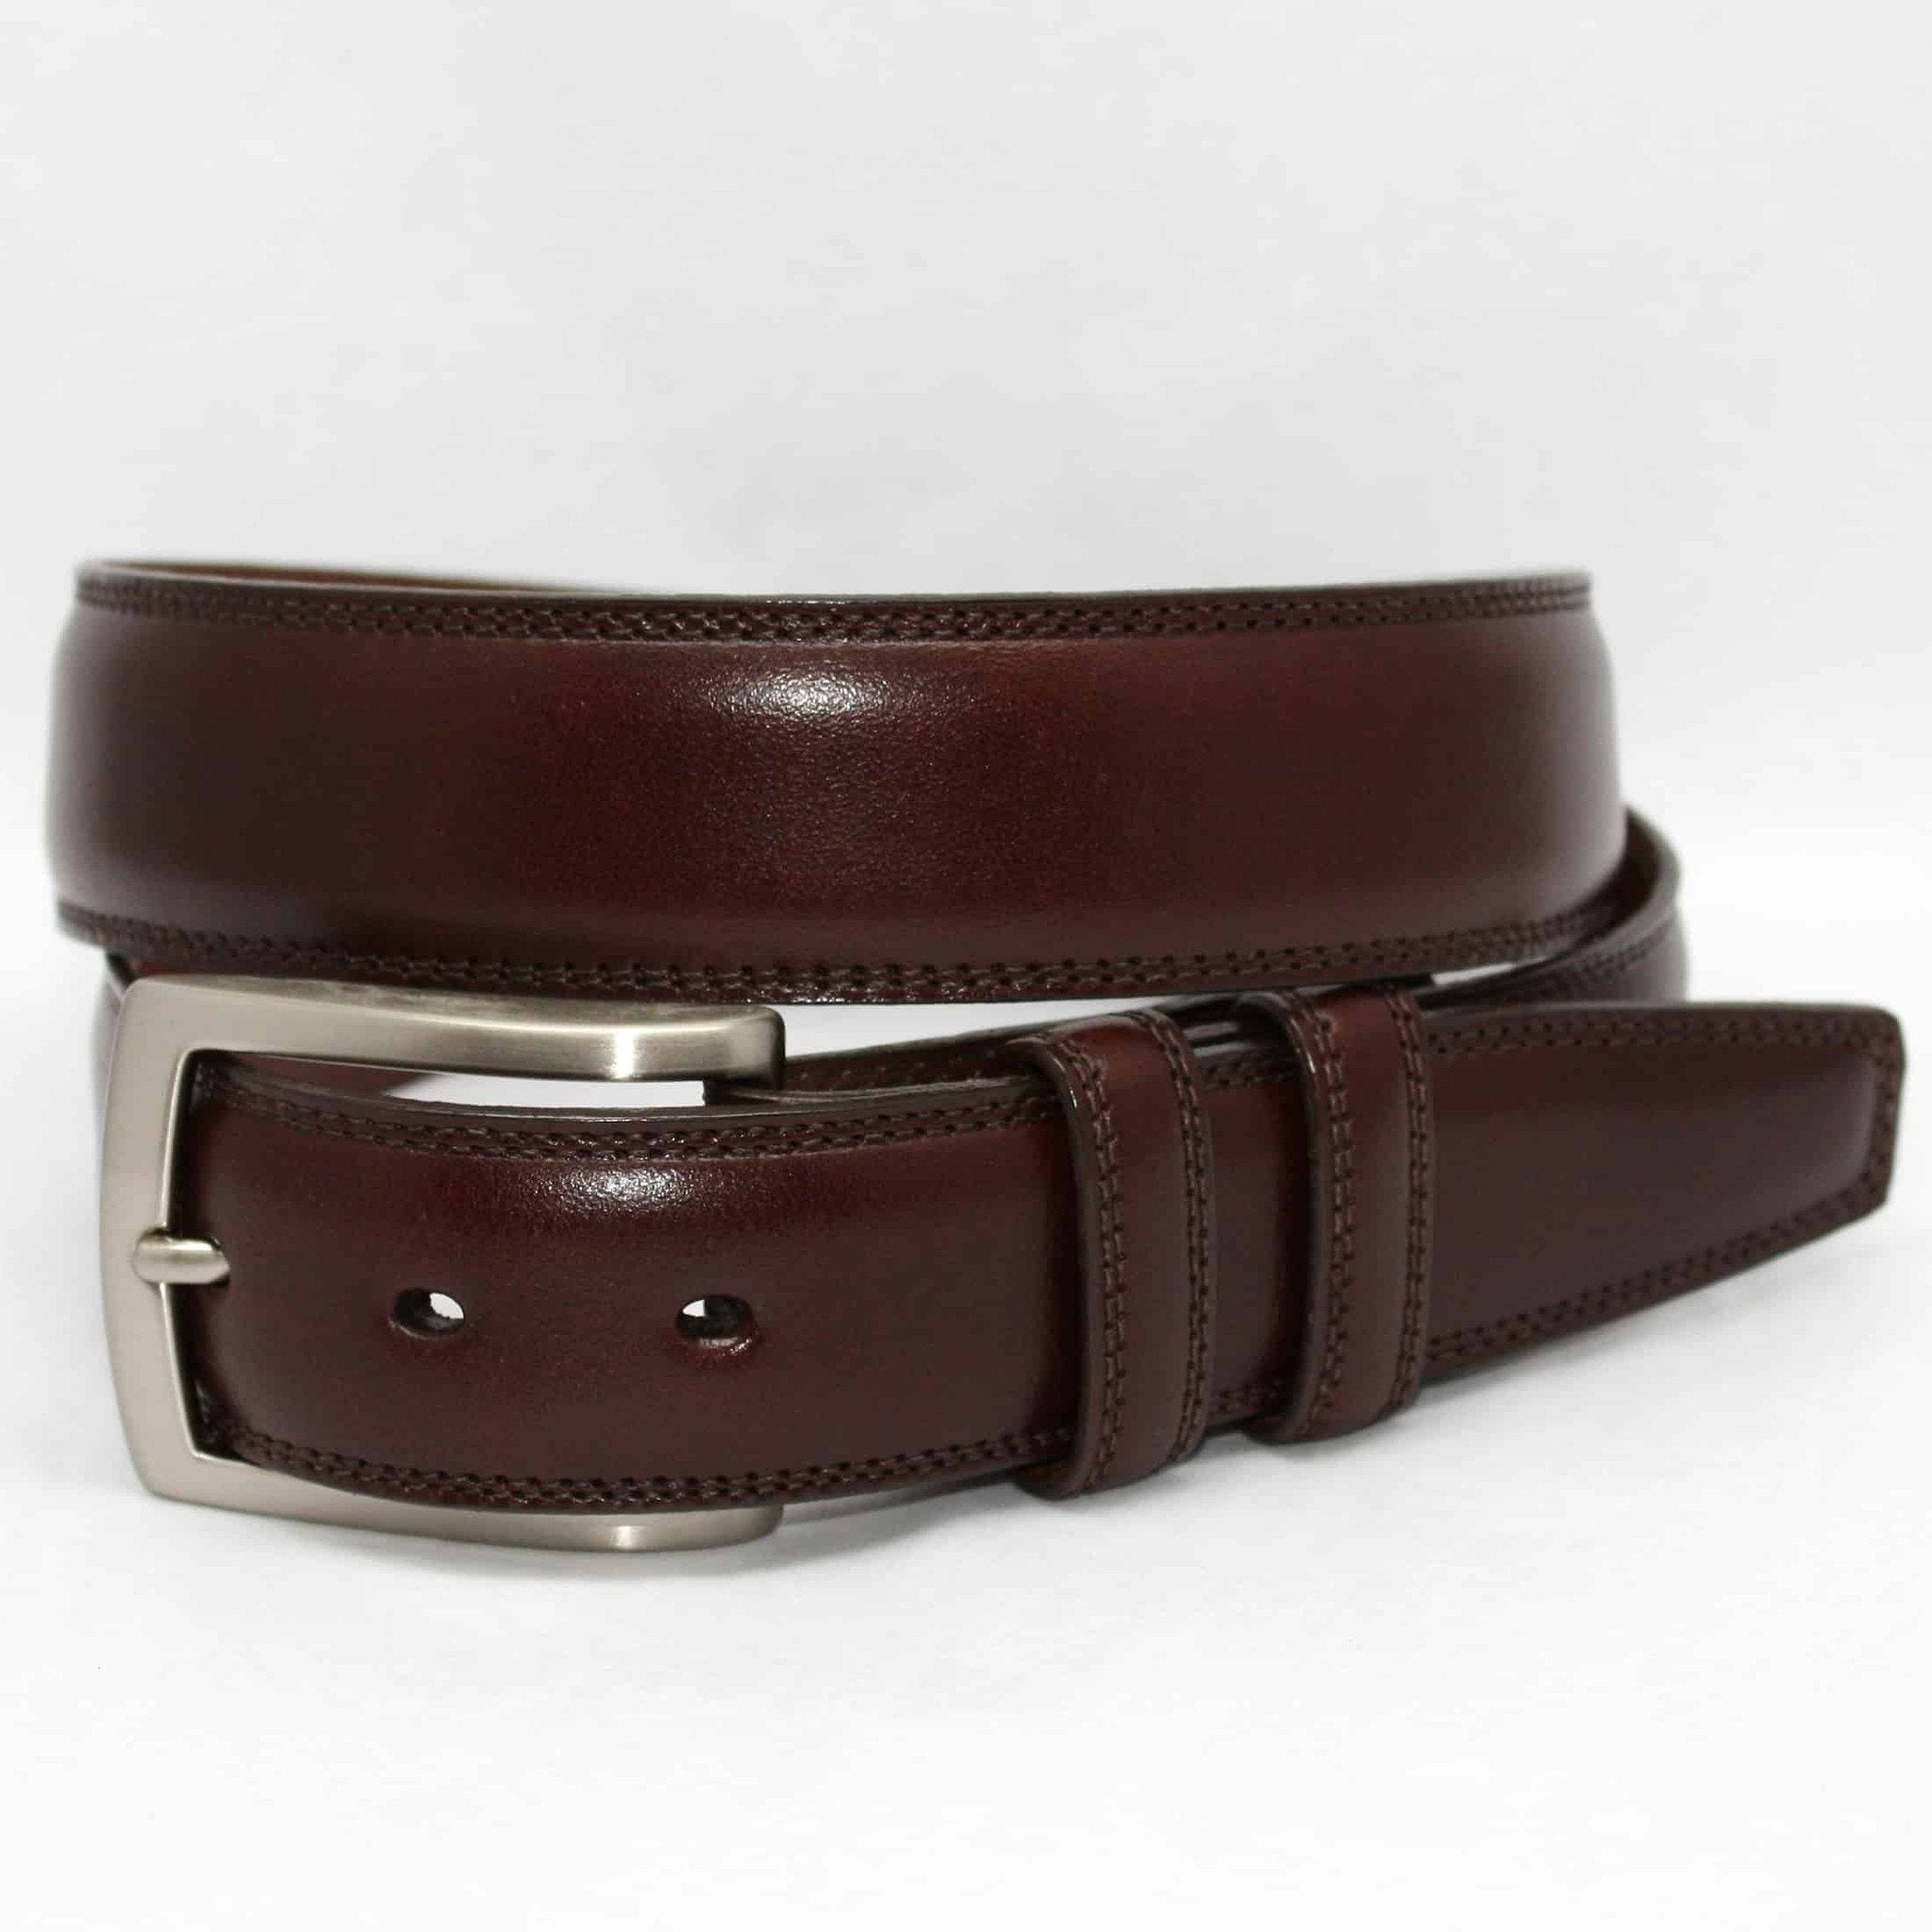 Italian Burnished Kipskin Belt - Brown,BELT,GentRow.com, | GentRow.com